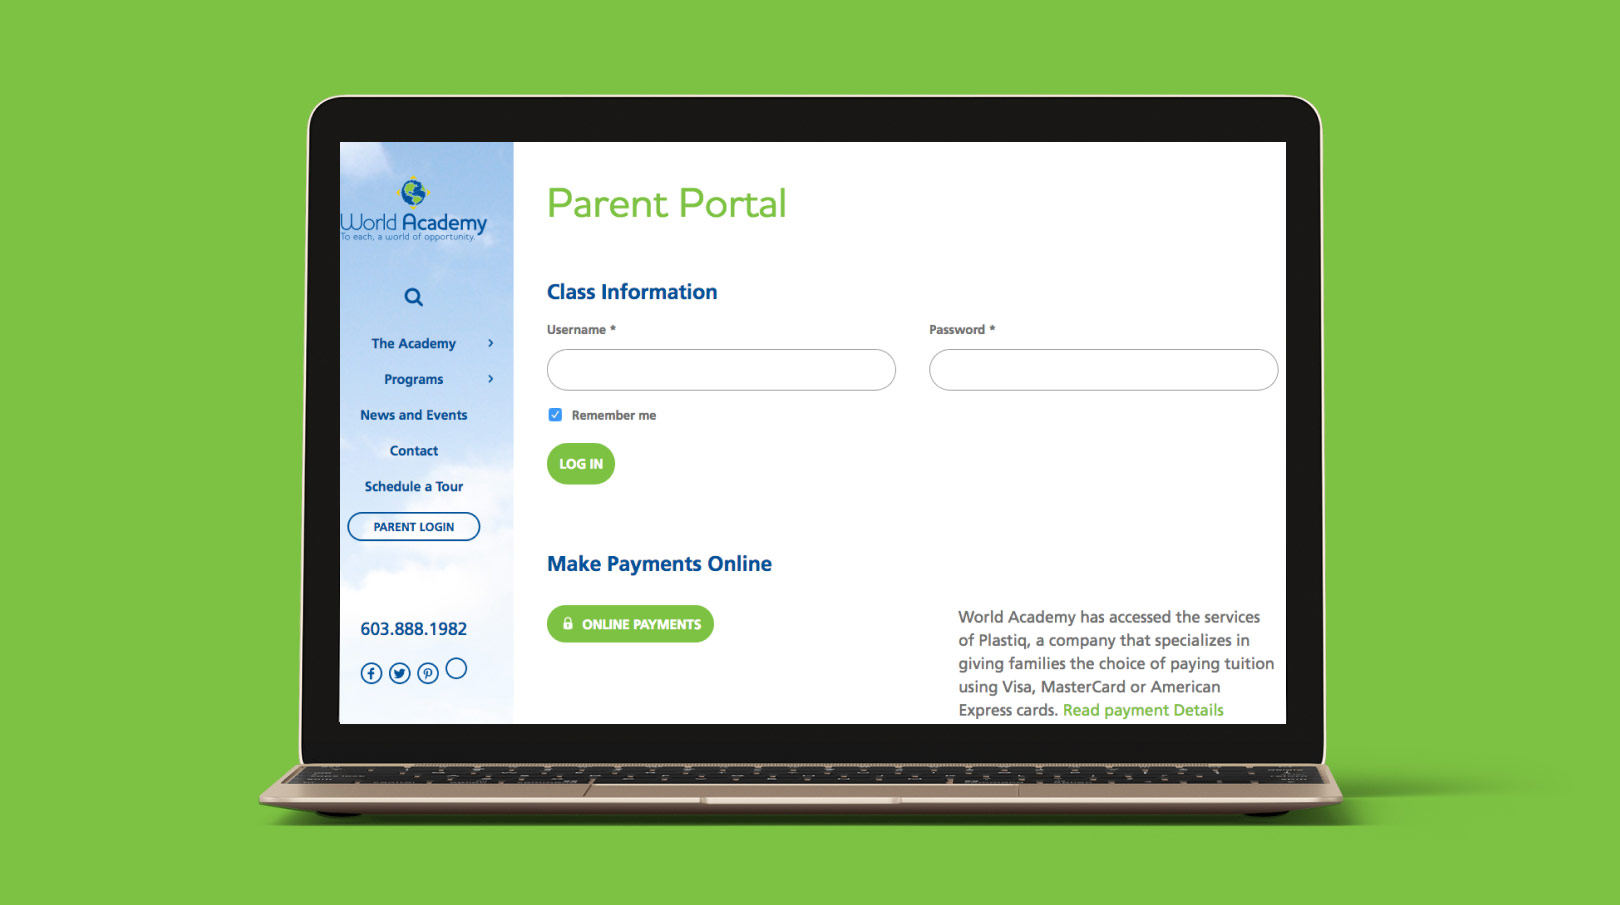 World Academy Parent Portal